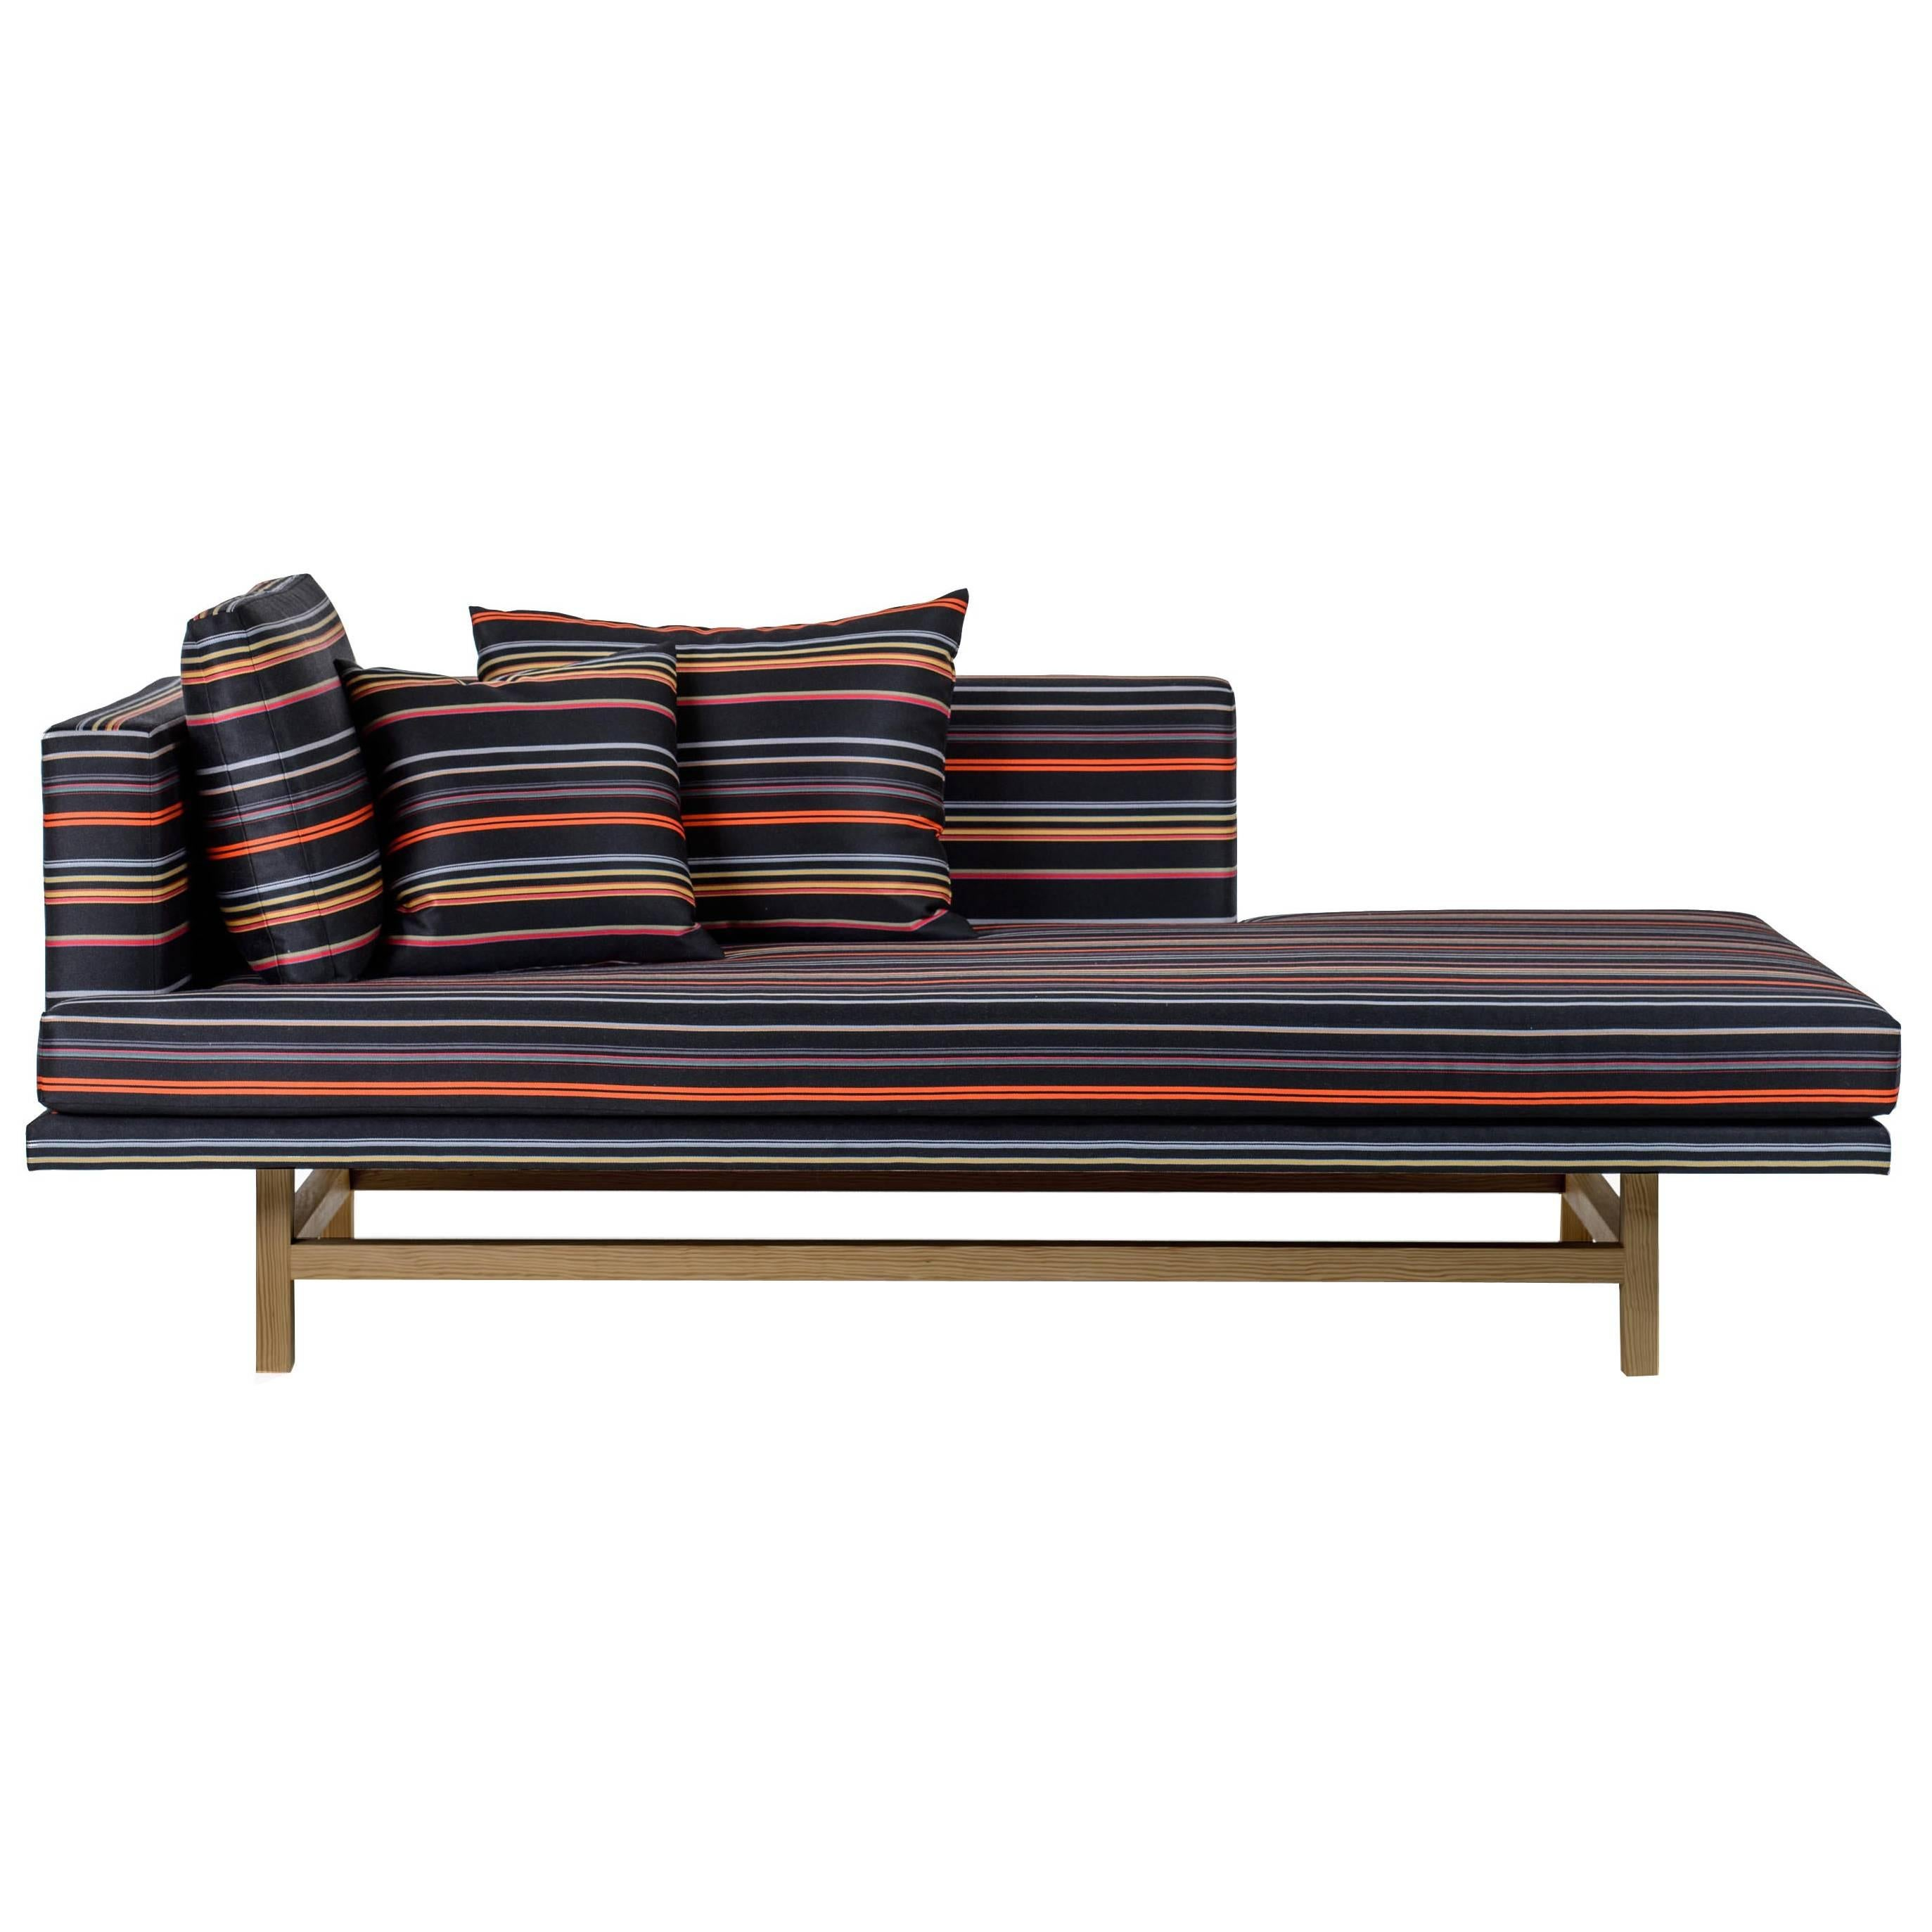 Furniture Chaise Aragon Chaise Lounge With White Oak Legs And Striped Wool